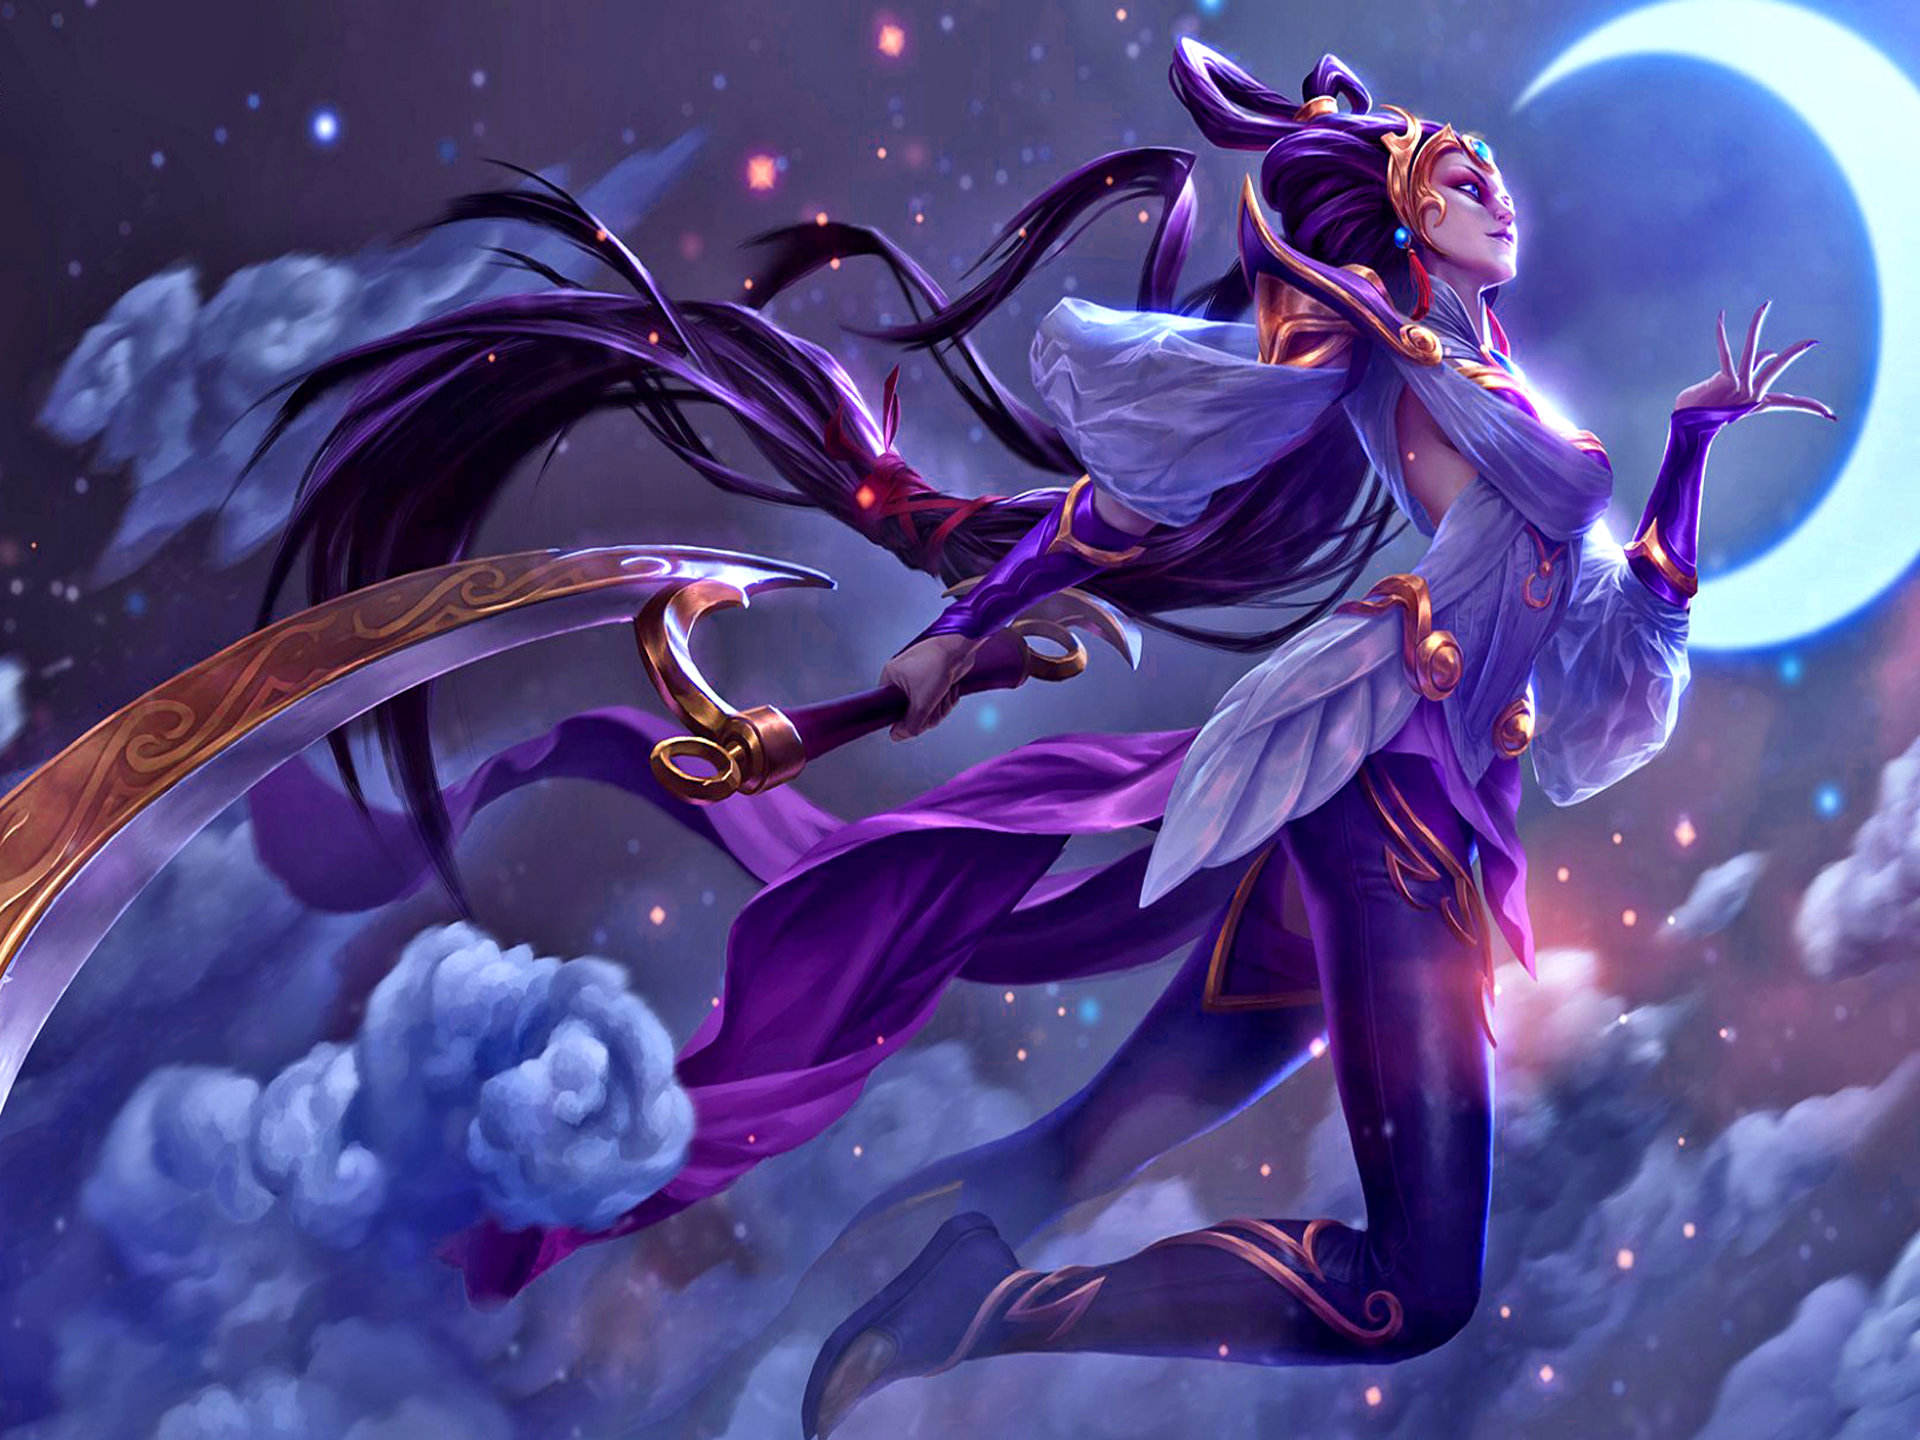 Free Diana (League Of Legends) high quality wallpaper ID:170996 for hd 1920x1440 desktop